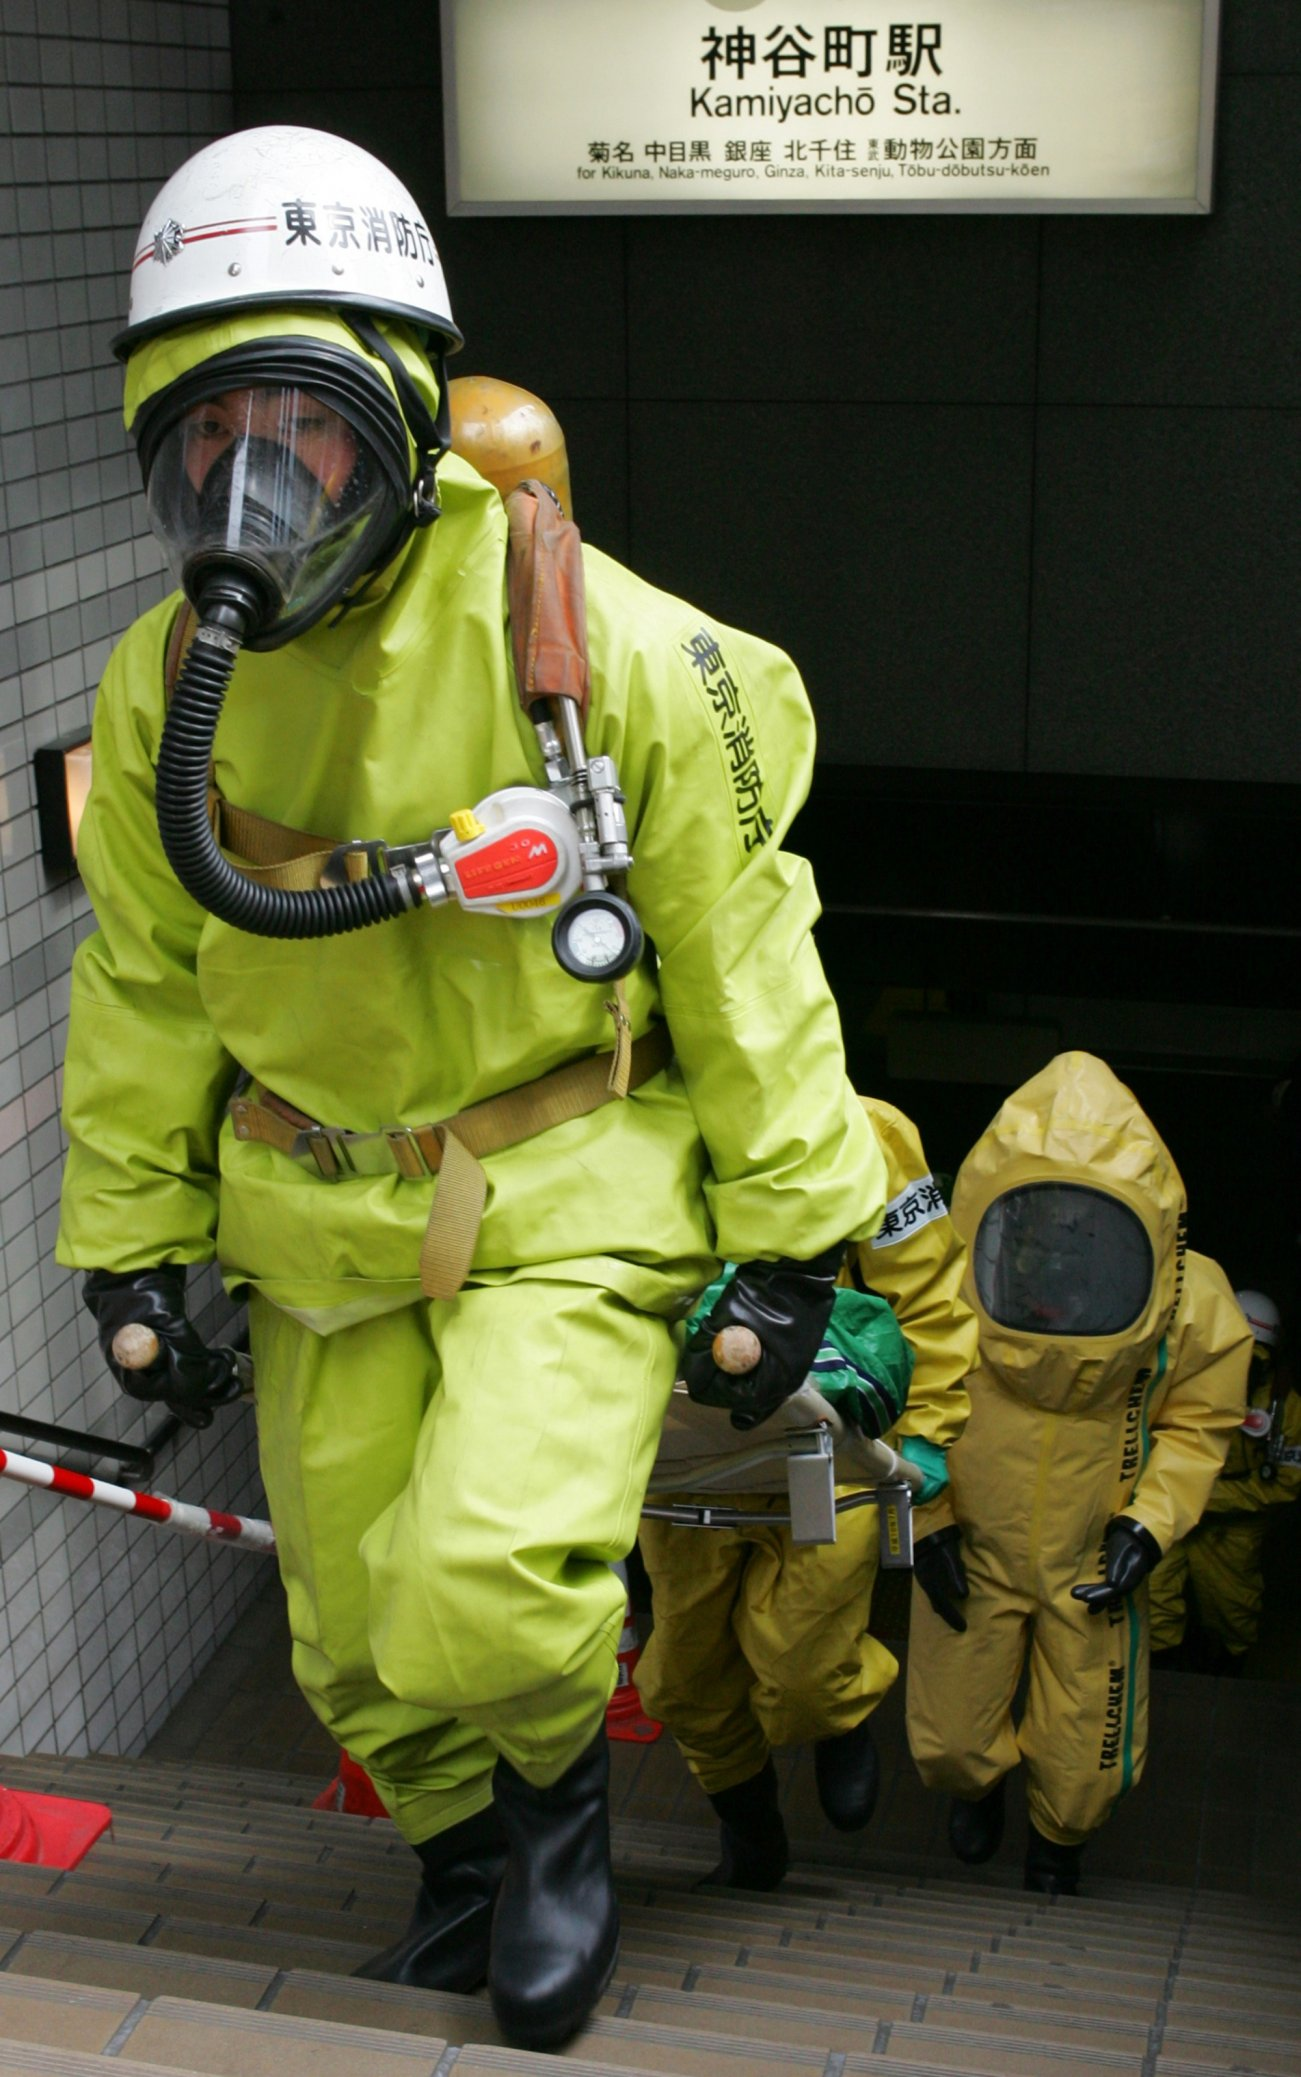 Sarin Gas: There Might Be No Worse Way to Die